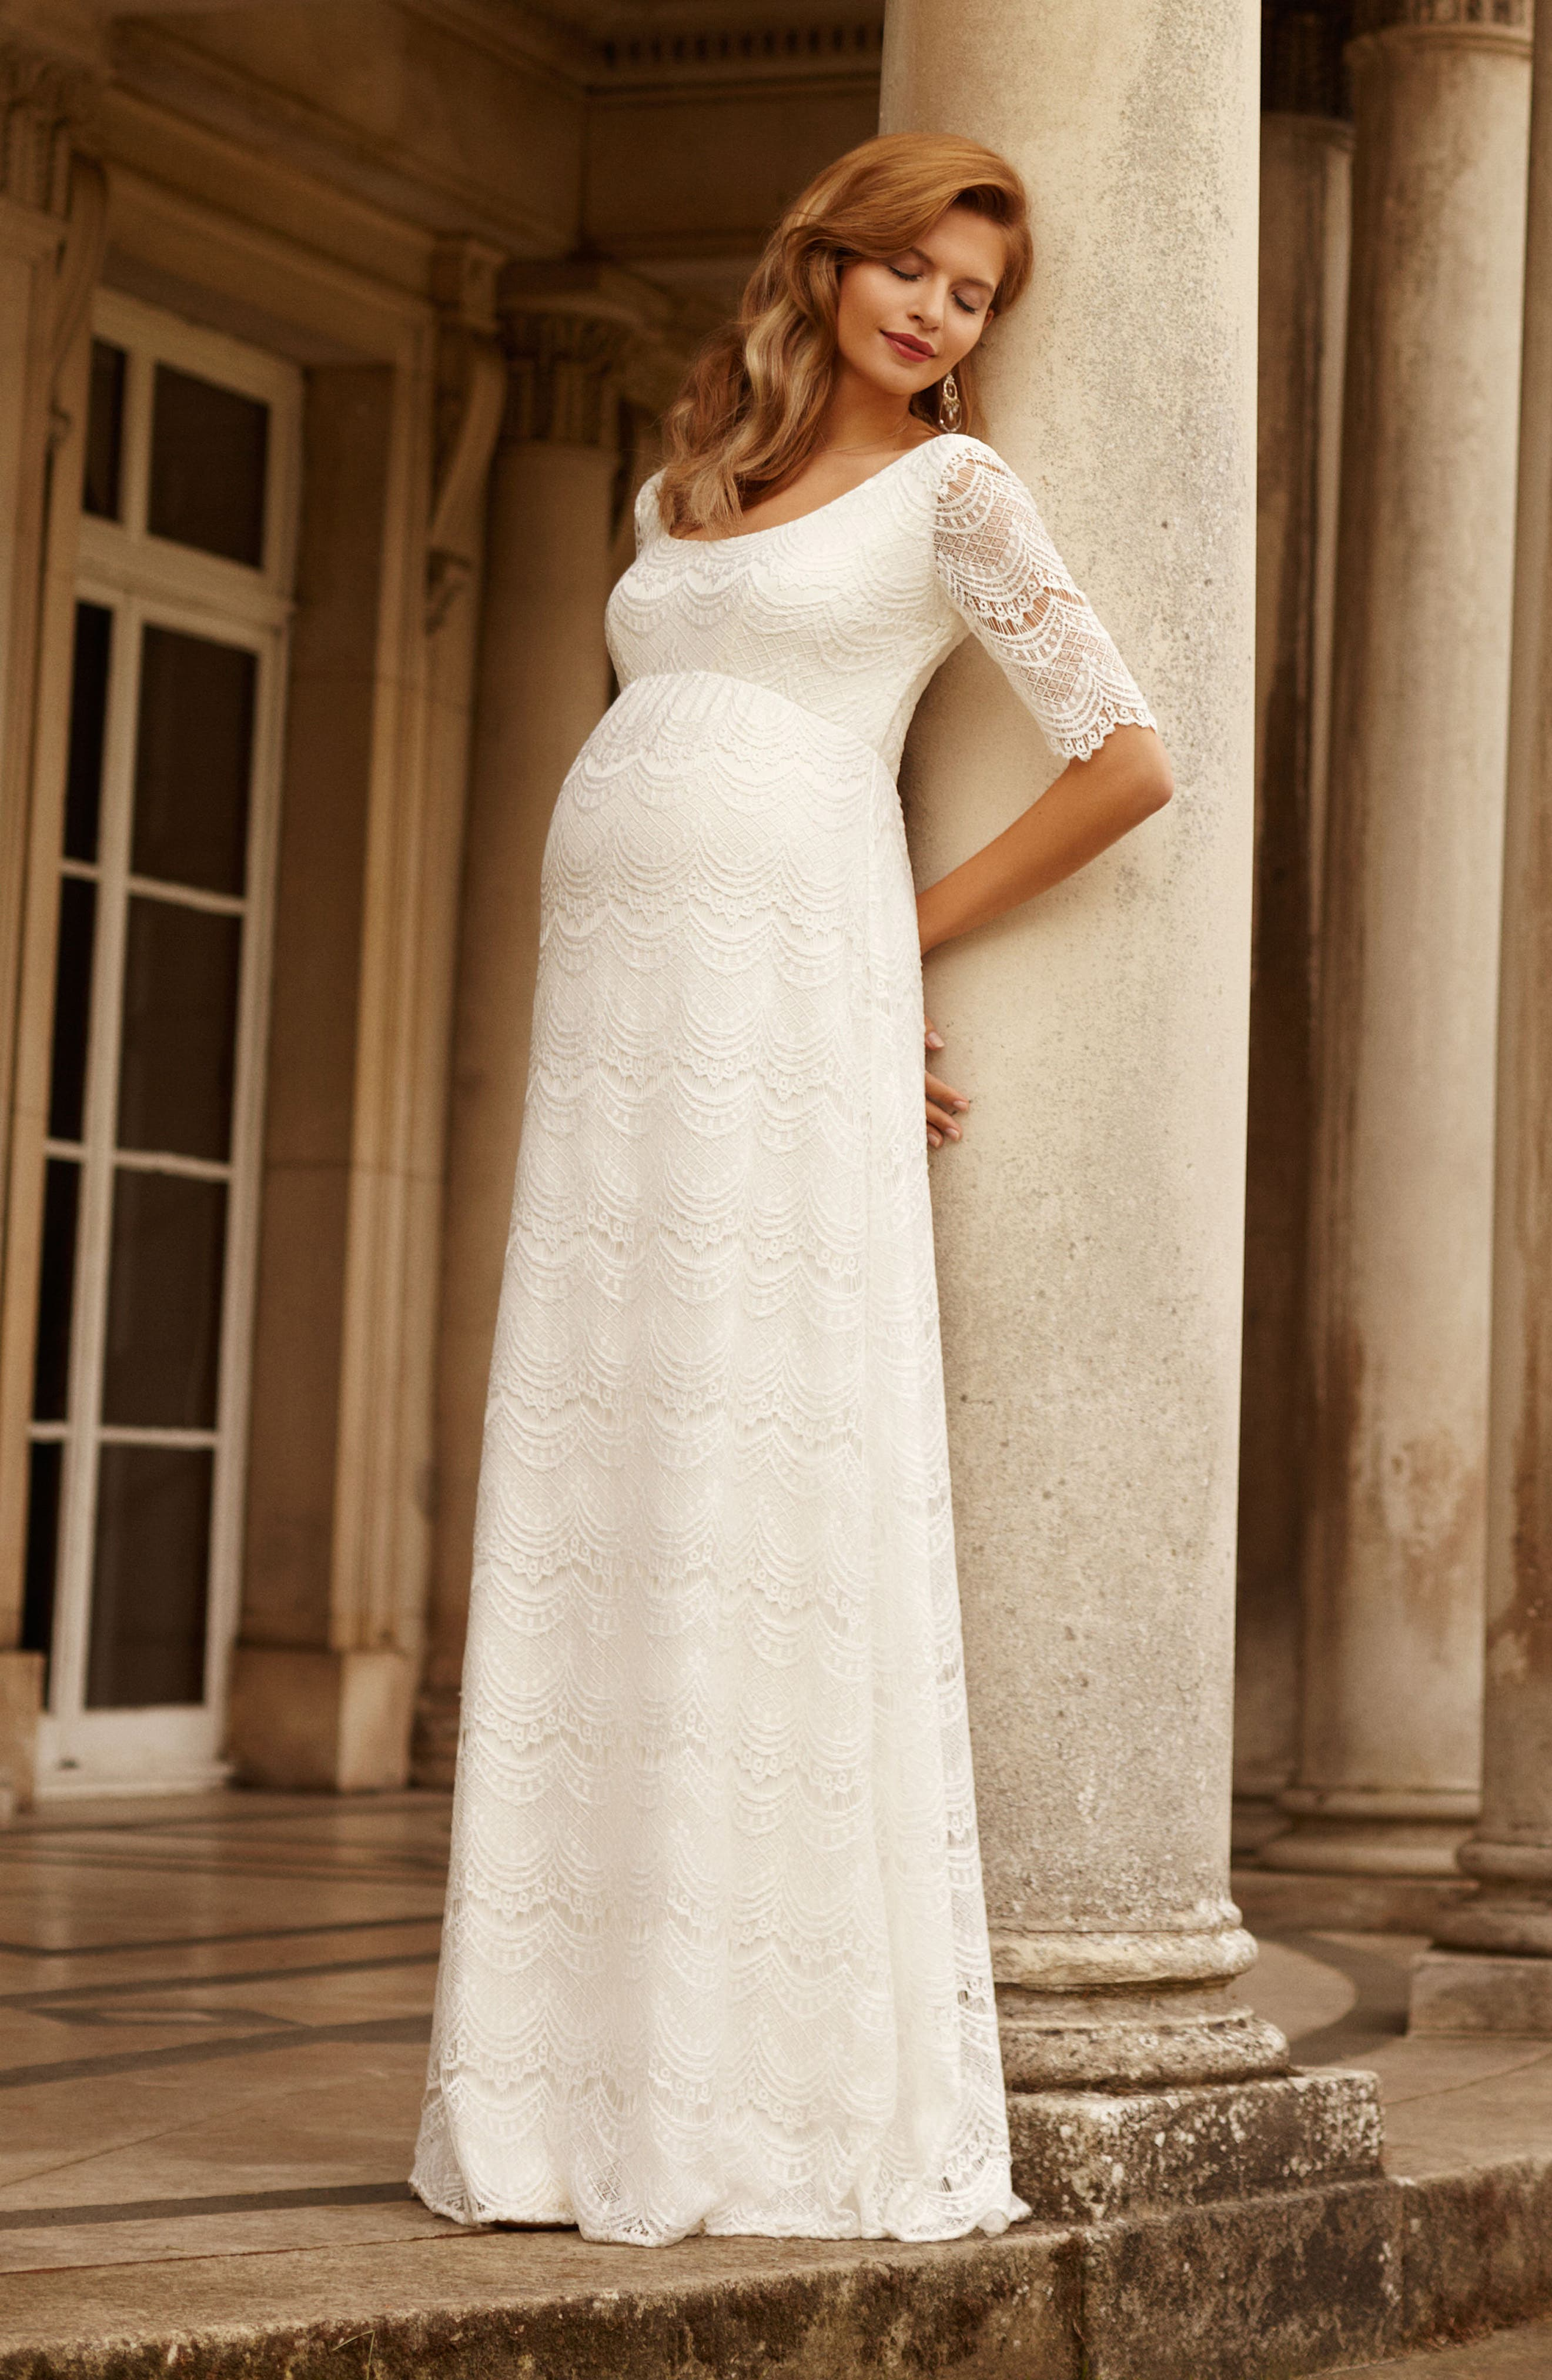 Verona Maternity Gown,                             Alternate thumbnail 4, color,                             BRIGHT IVORY